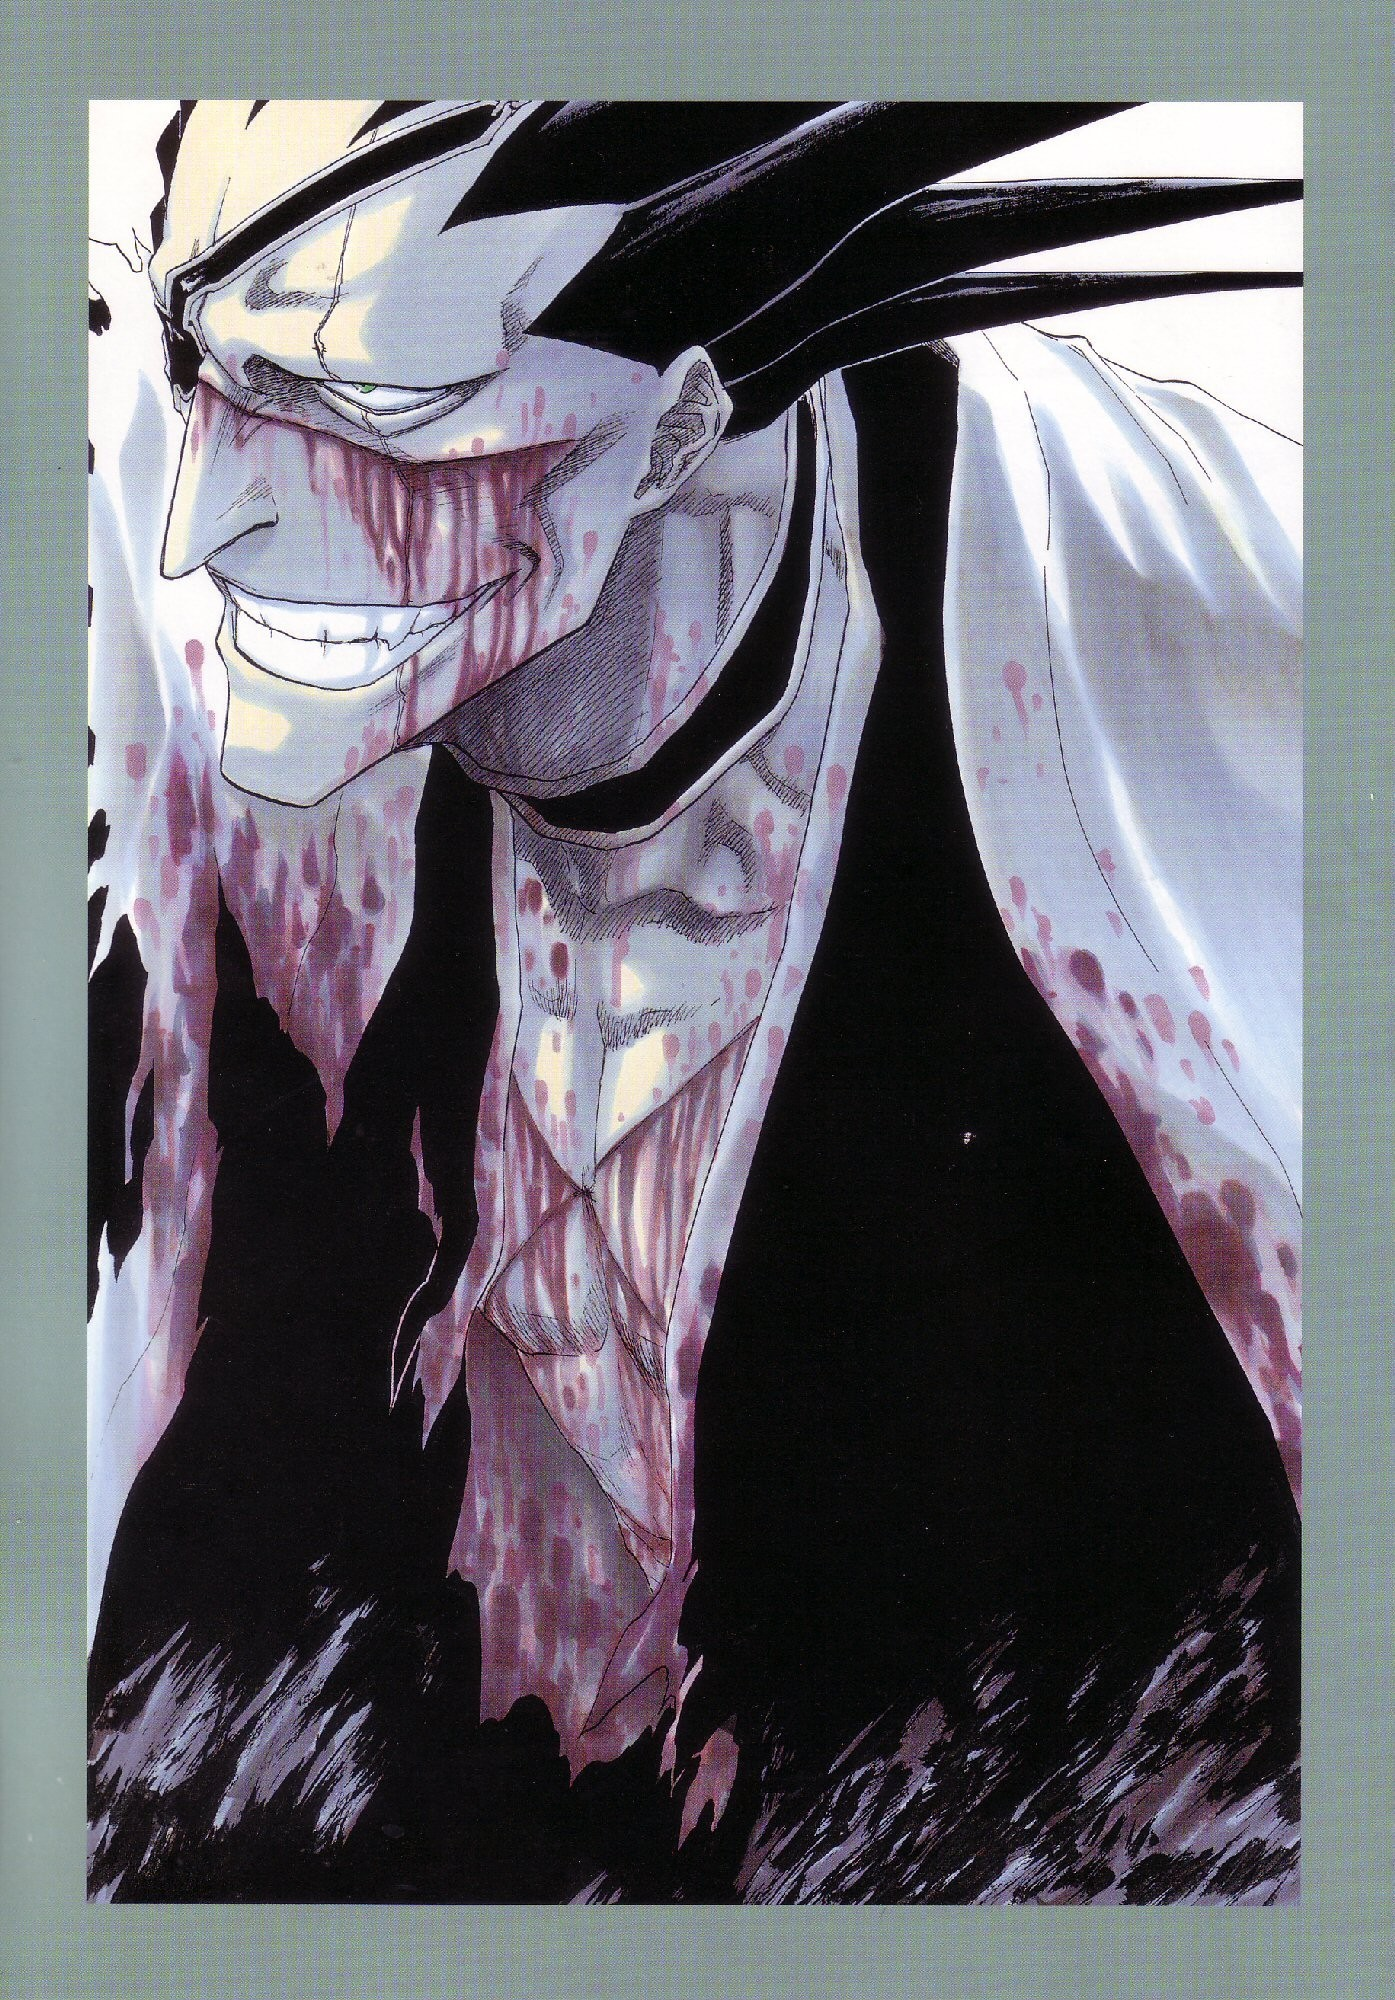 Bleach: Kenpachi Zaraki - Photo Gallery